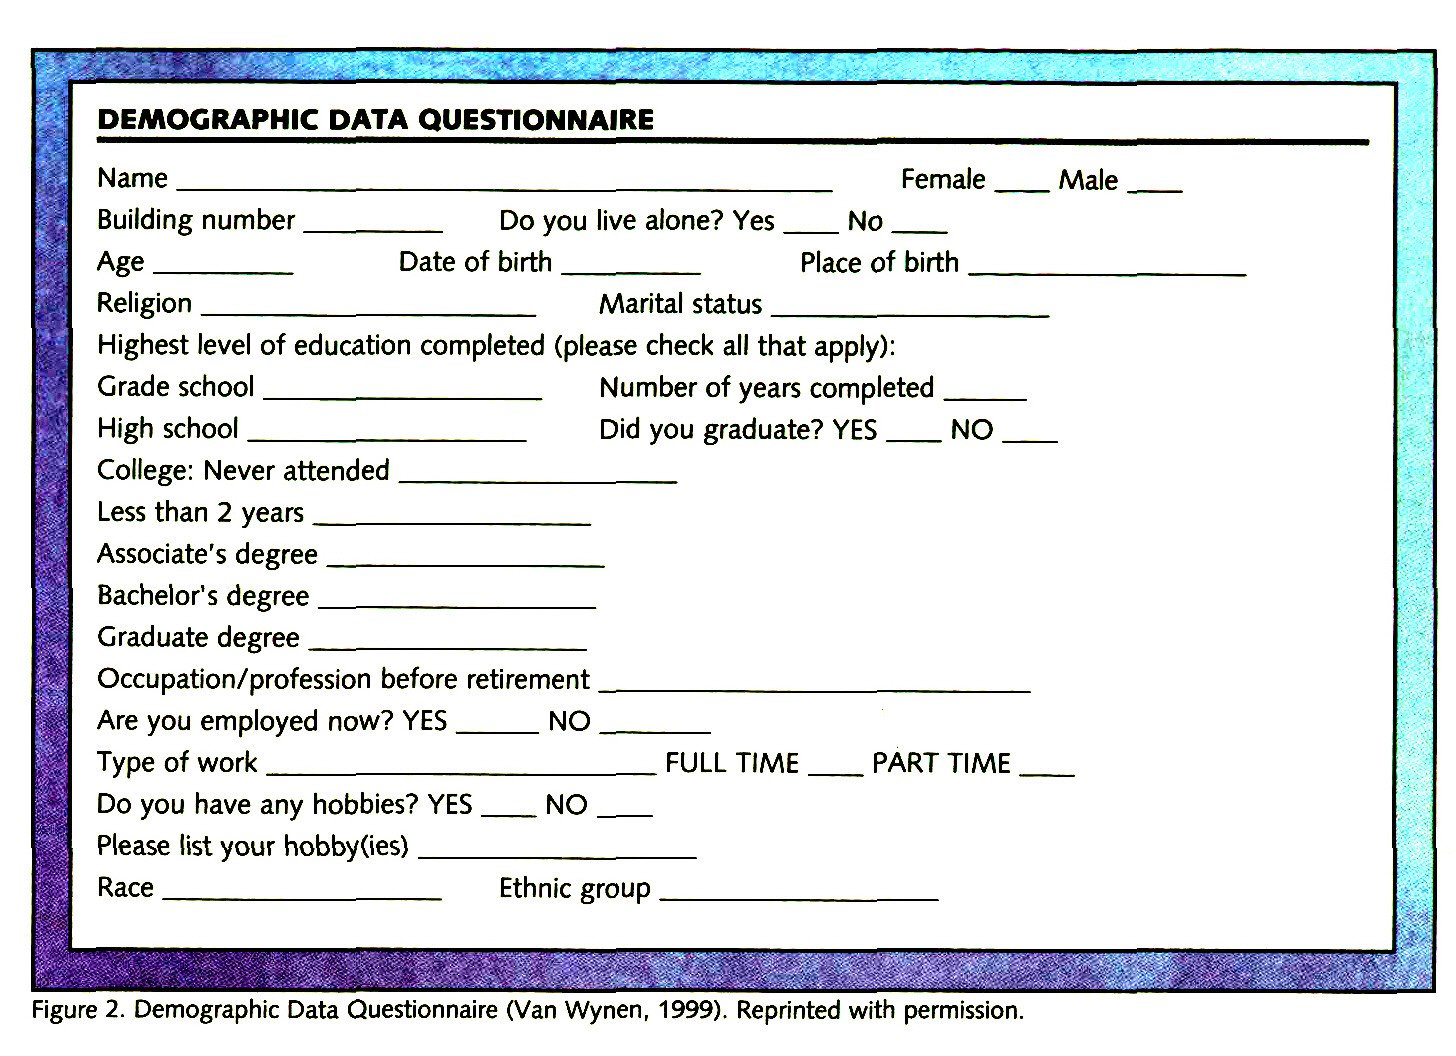 Figure 2. Demographic Data Questionnaire (Van Wynen, 1999). Reprinted with permission.